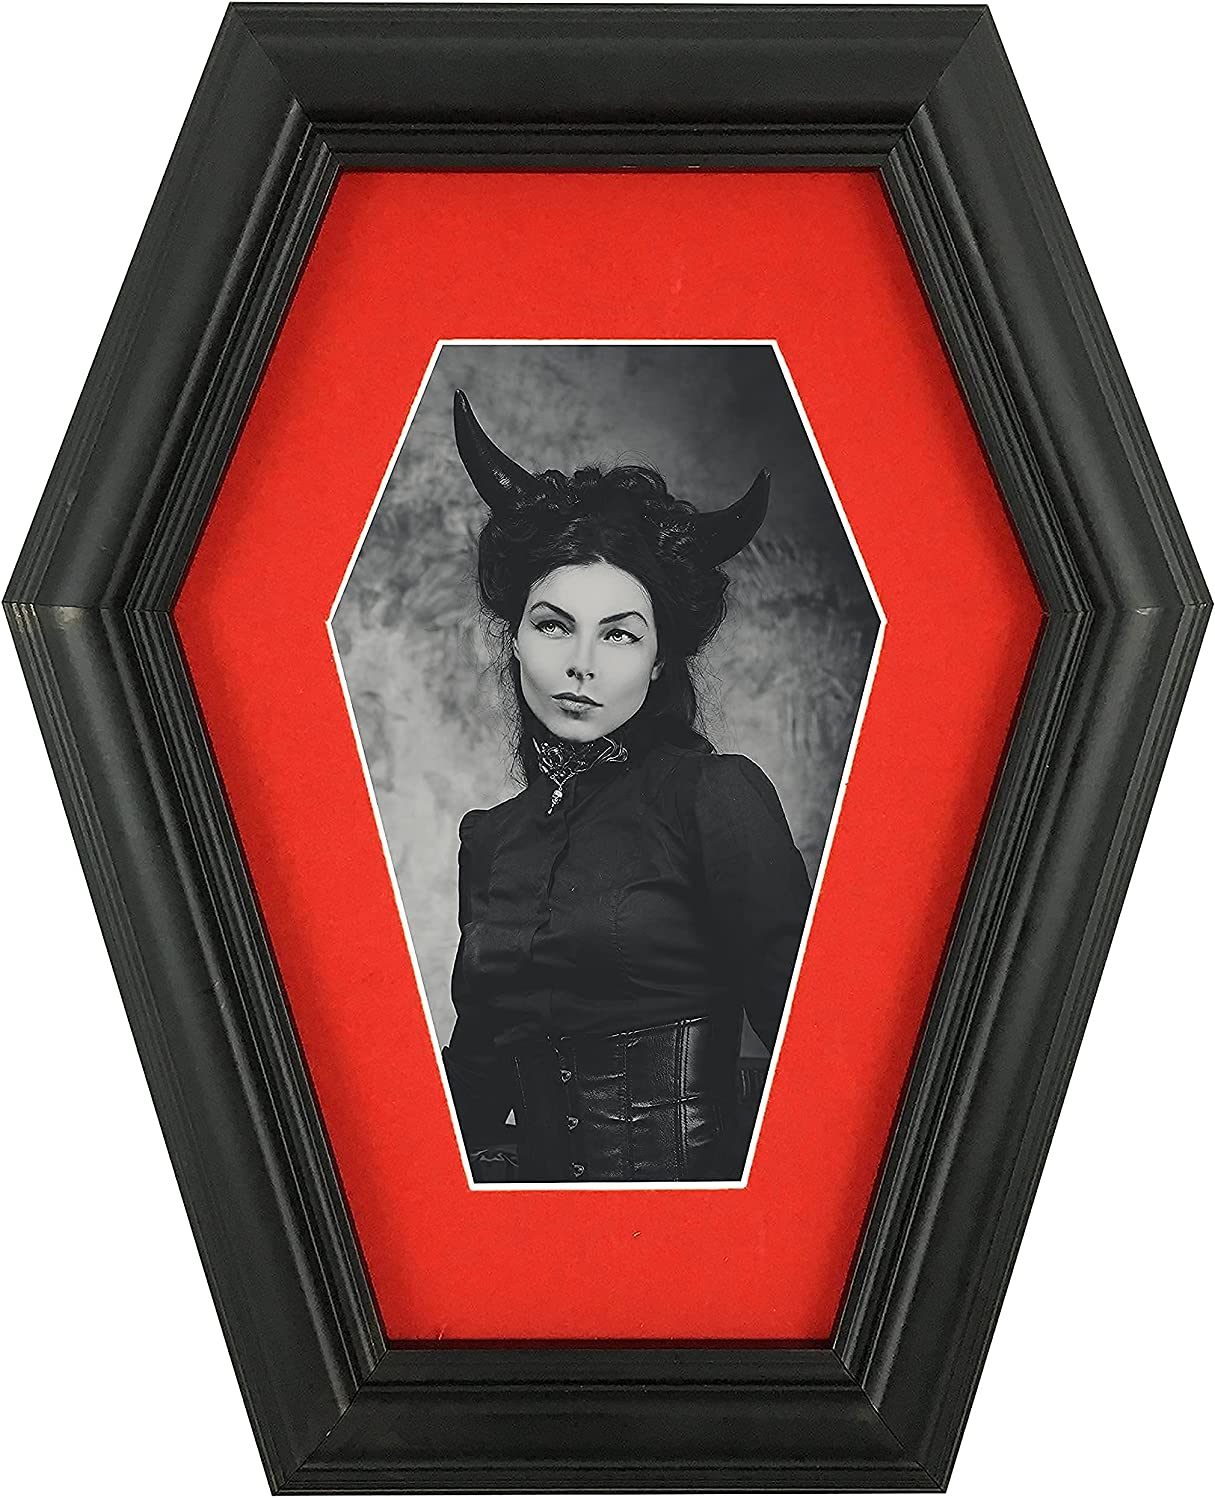 Dravira Coffin Picture Frame - Creepy Gothic Home Decor - Black 4x6 for Wall or Tabletop - High Definition Plexiglass front